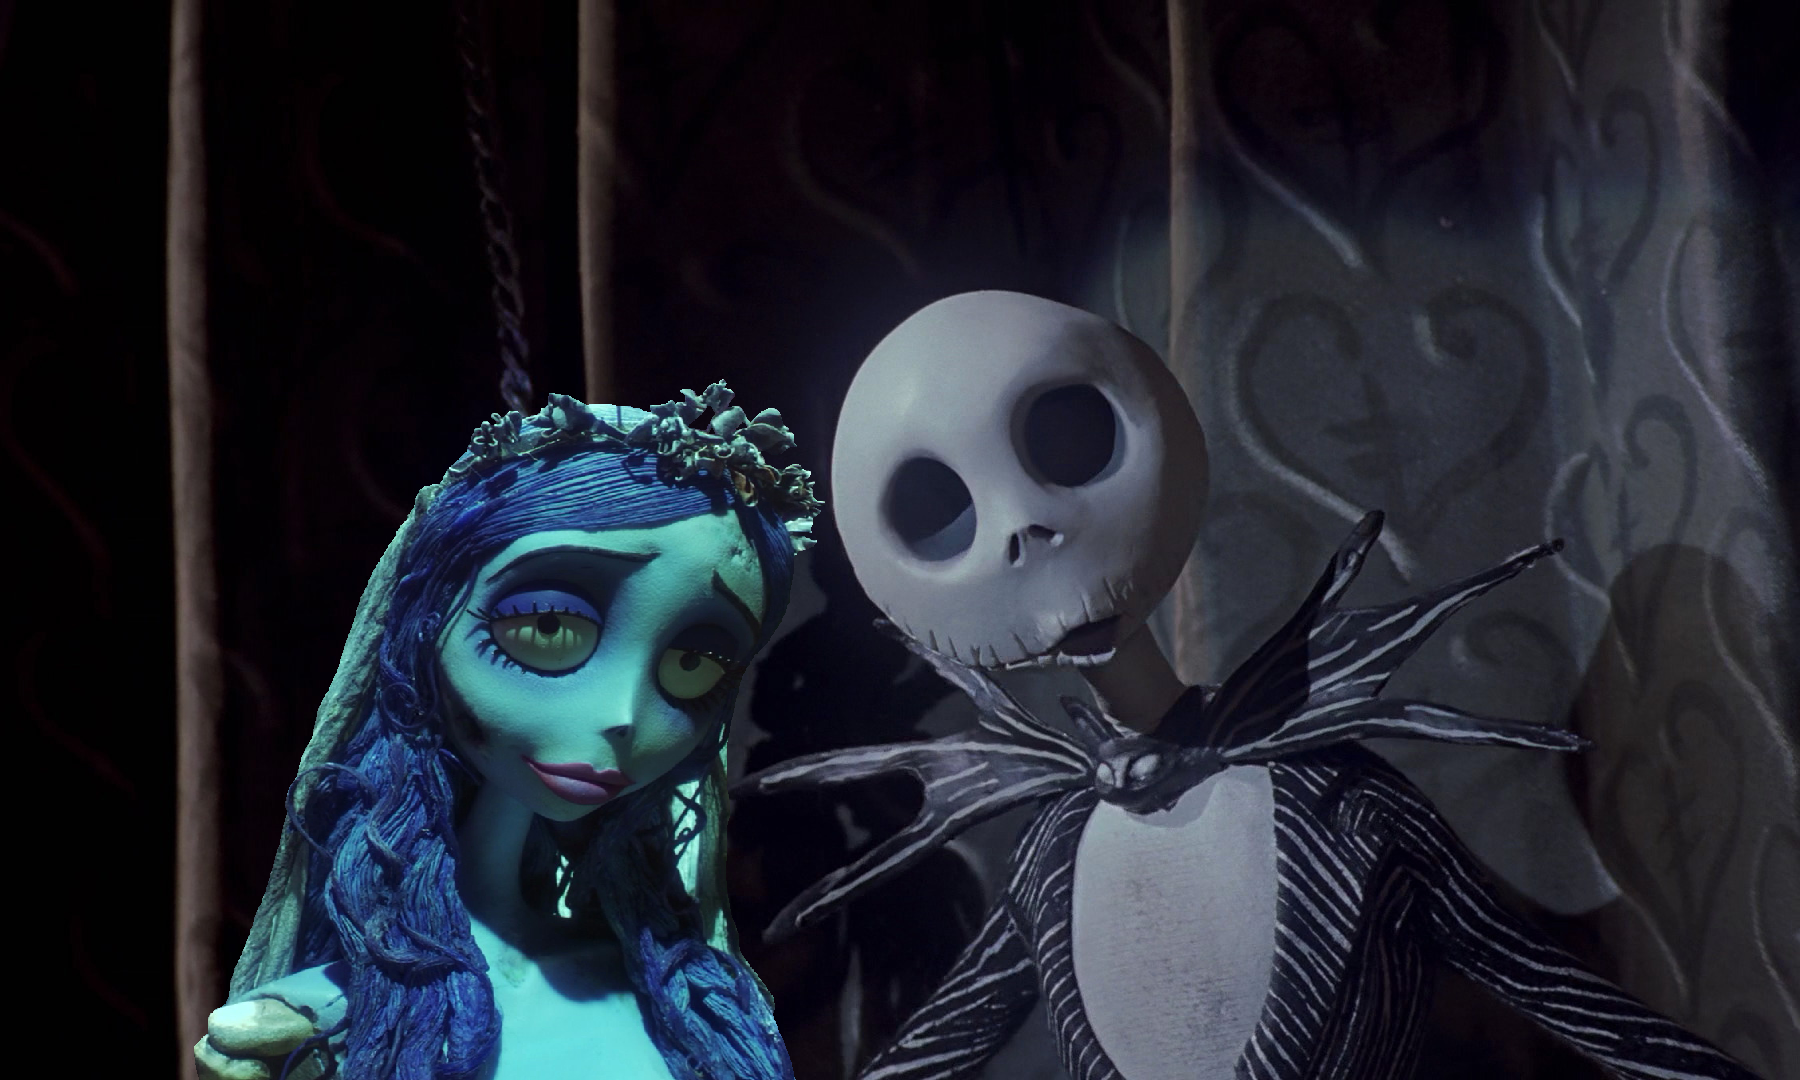 The Corpse Bride Before クリスマス